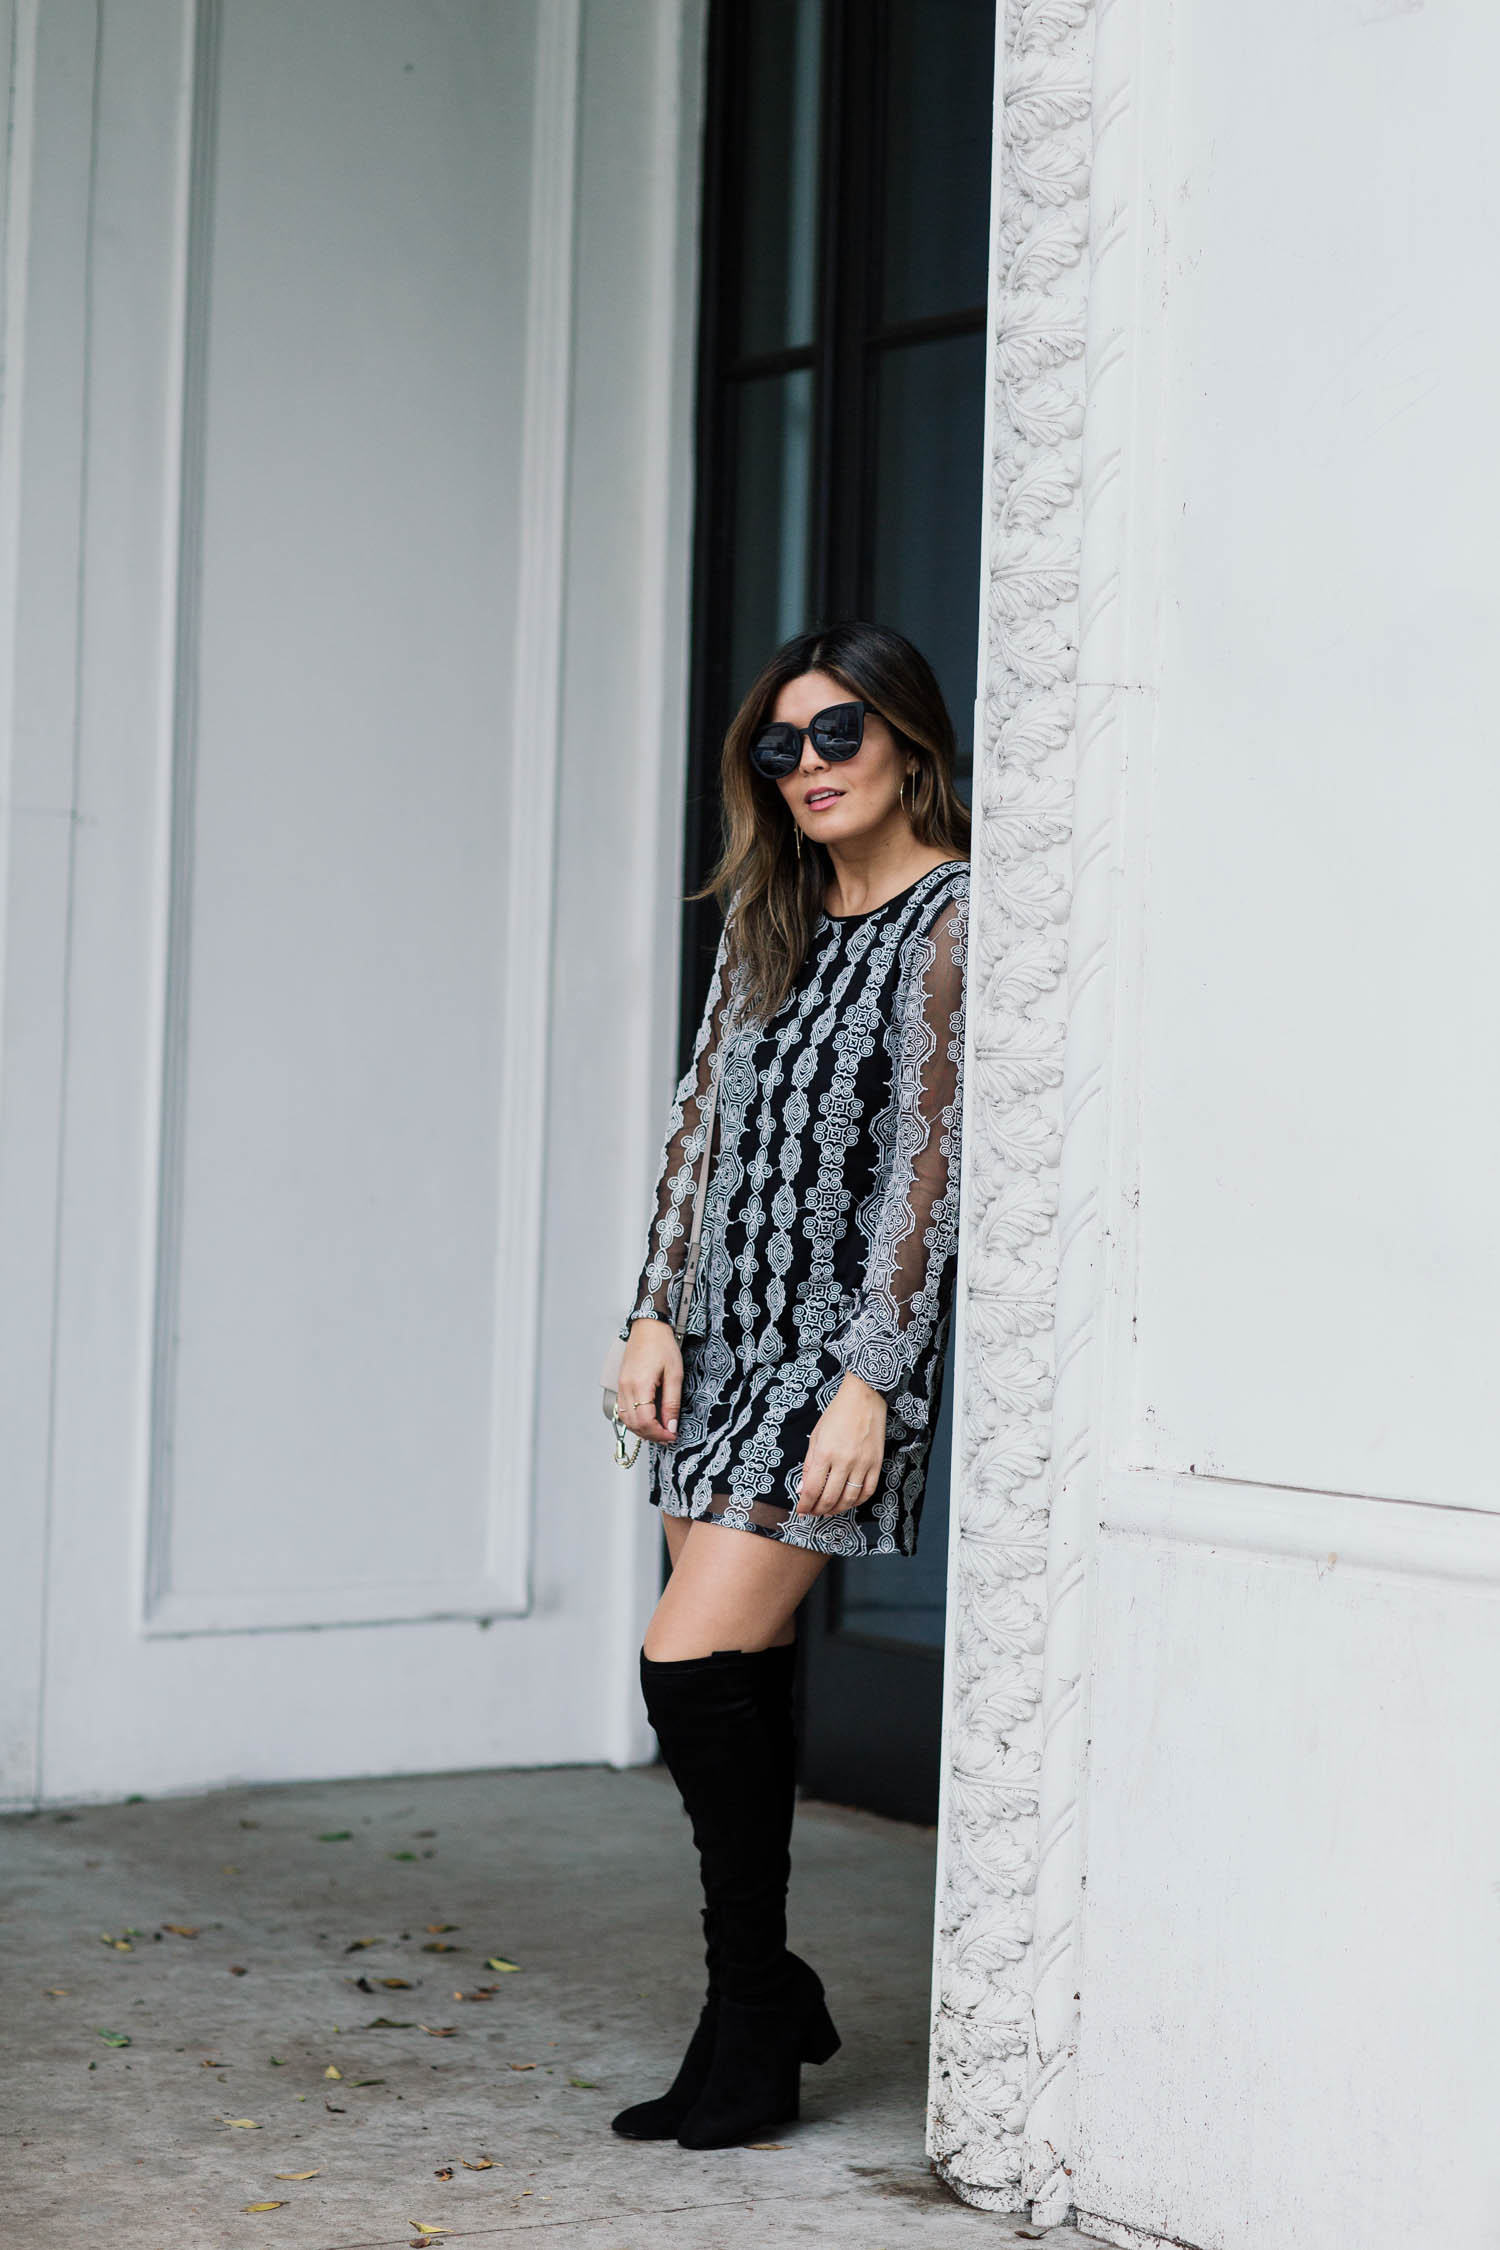 Blogger Sara Azani of Style MBA, a petite brunette woman, wears Band of Gypsies Geometric Print Dress via Nordstrom, Dolce Vita OTK Sparrow Thigh High Almond Toe Boot, Quay Australia Sunglasses, and a Chloé Mini Faye Suede & Leather Wallet on a Chain as part of a black and white outfit.